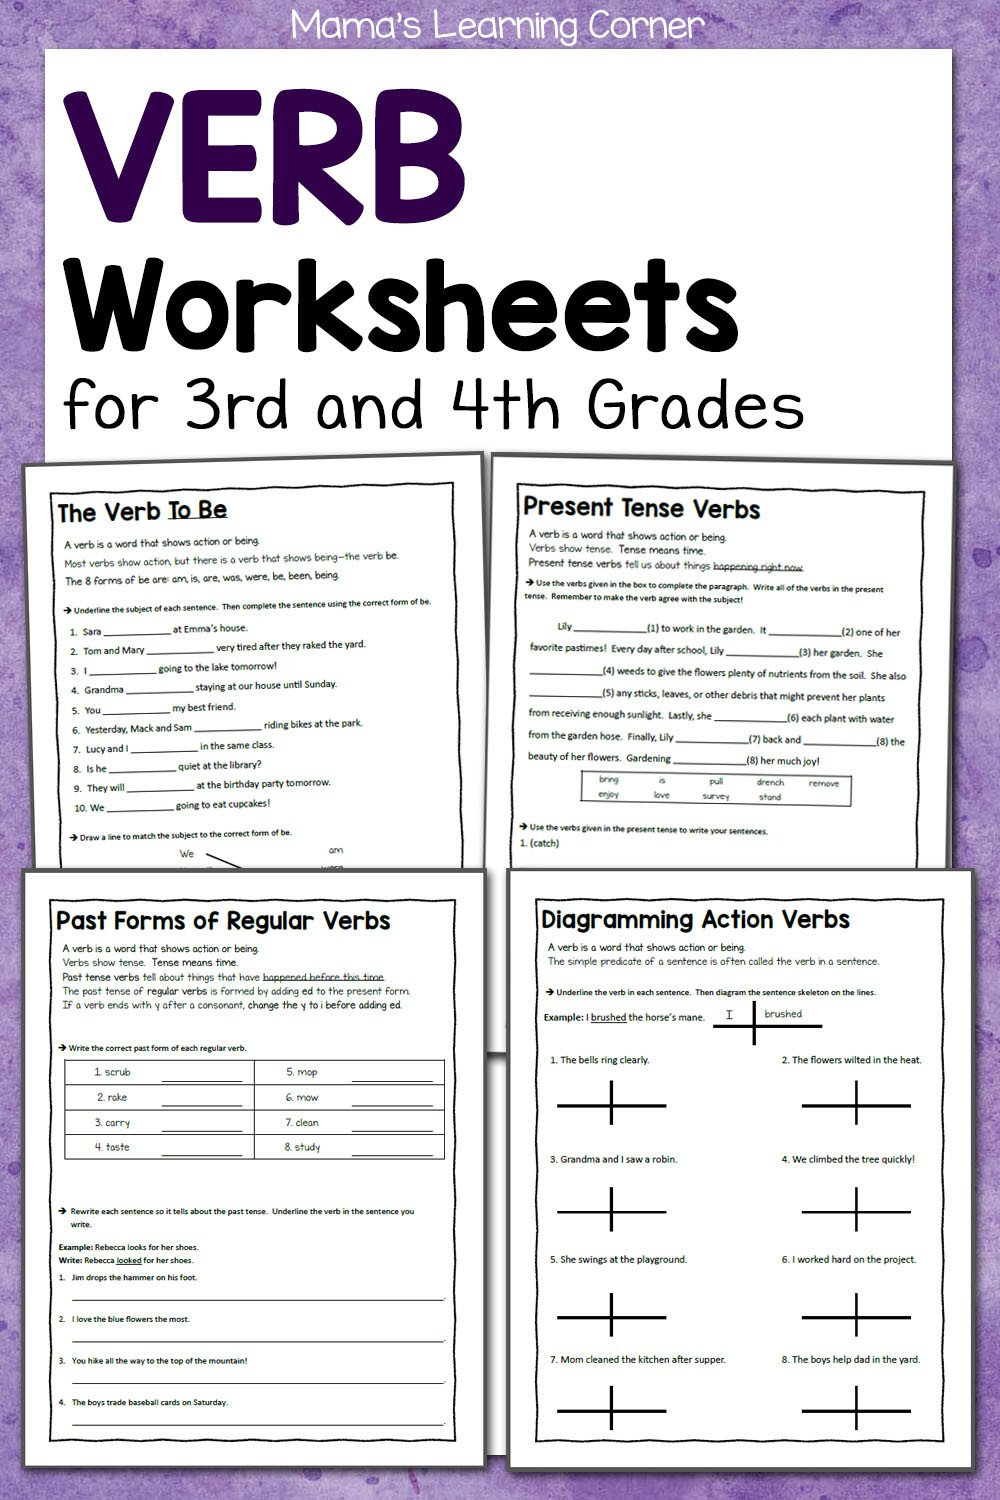 Grammar 3rd Grade Worksheets Verb Worksheets for 3rd and 4th Grades Mamas Learning Corner